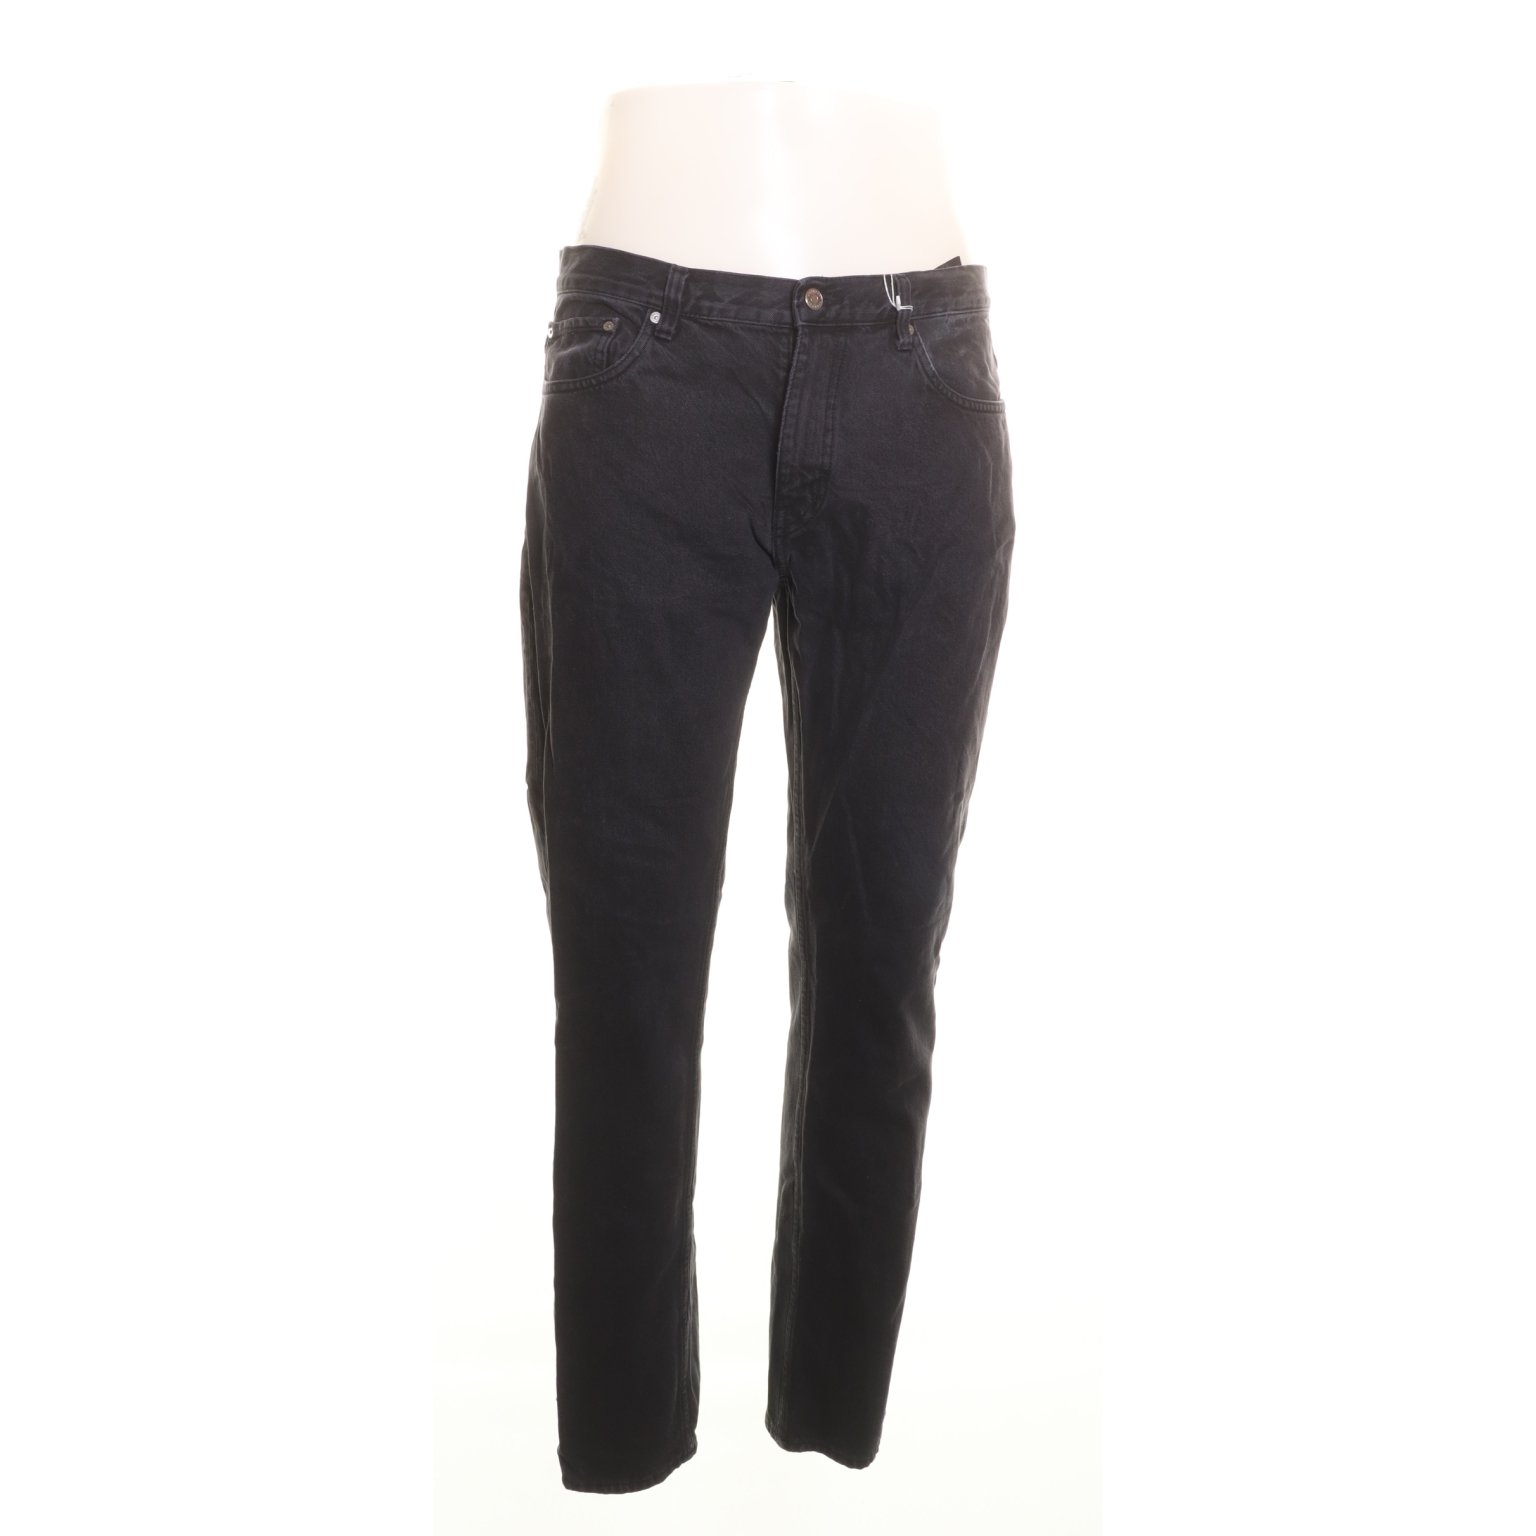 Weekday, Jeans, Strl: 33/32, Alley, Svart, Bomull